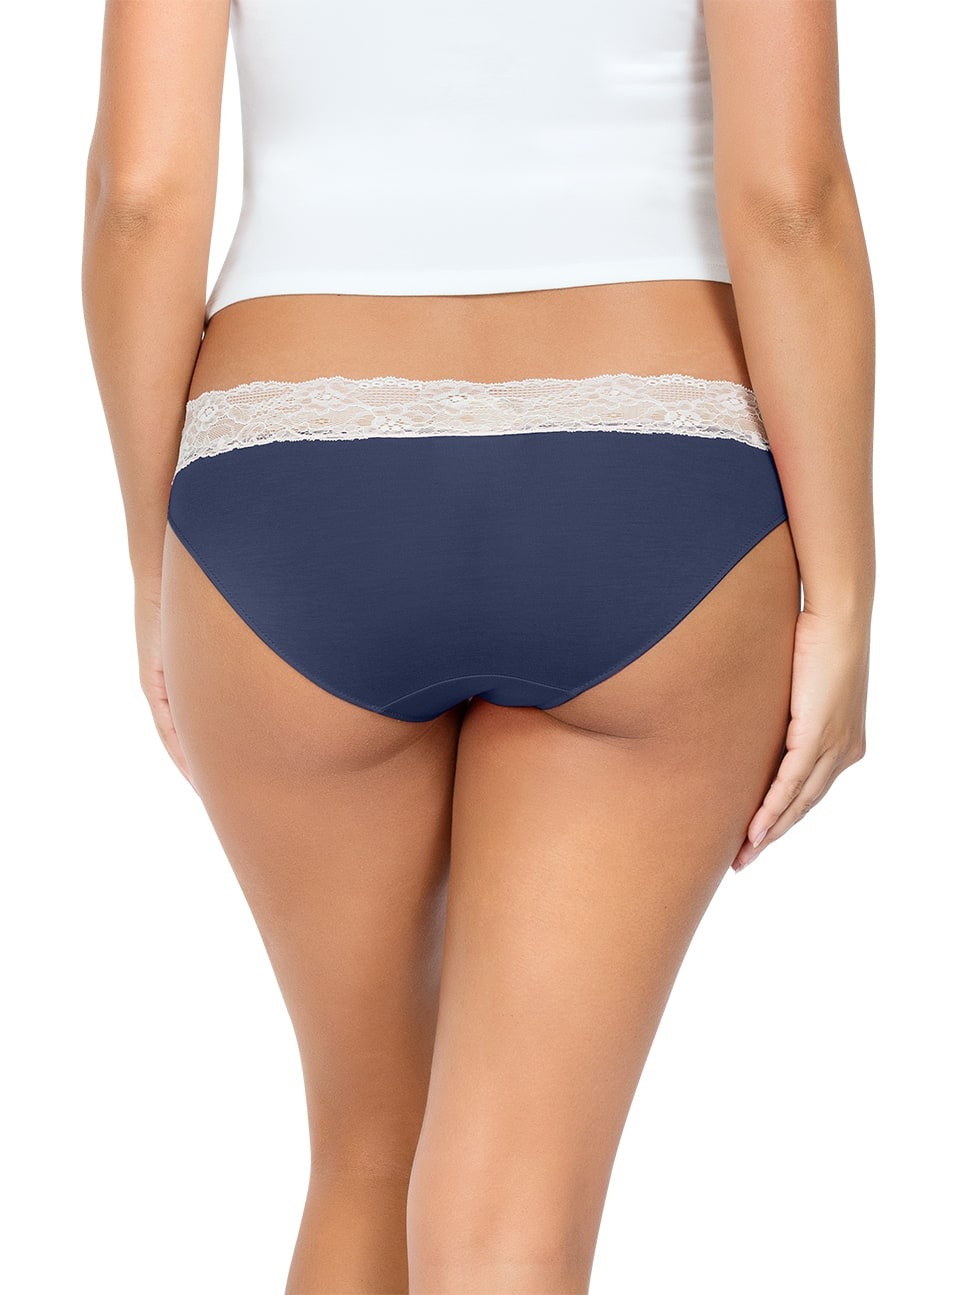 PARFAIT ParfaitPanty SoEssential BikiniPP303 NavyBlue Back close - Parfait Panty So Essential Bikini- Navy - PP303